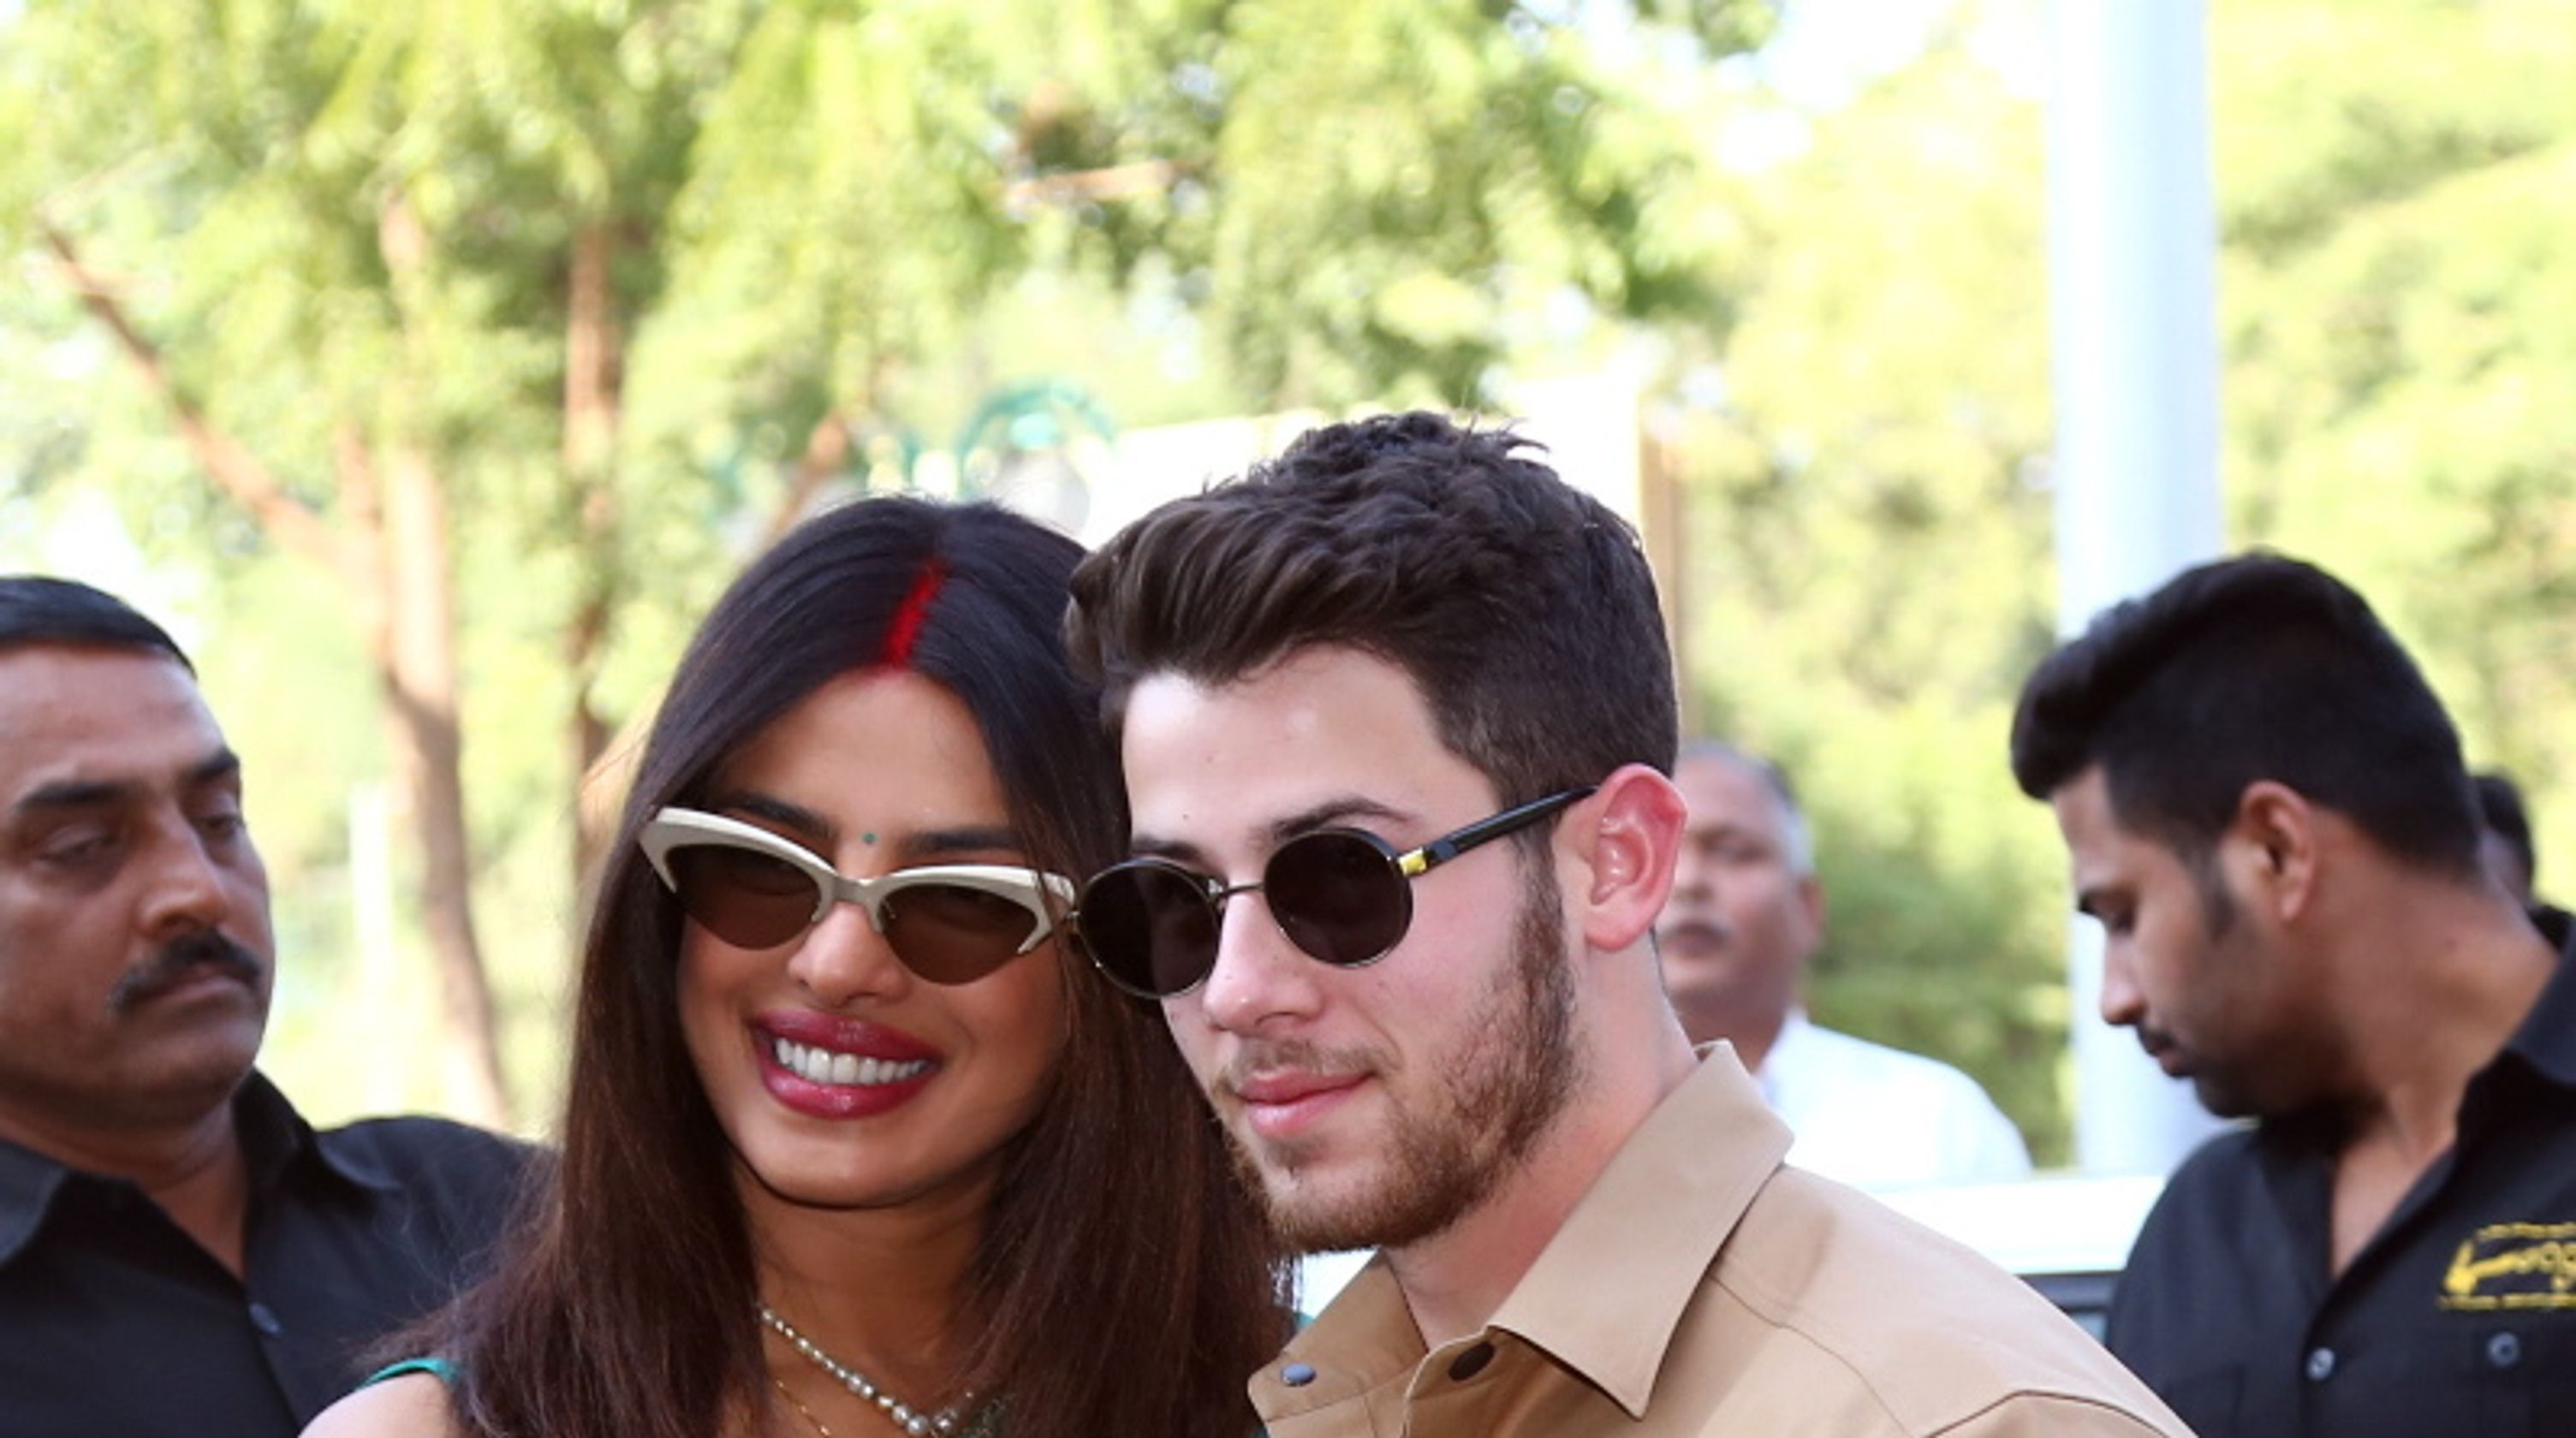 Priyanka Chopra, Nick Jonas marry in Hindu wedding at Indian palace, reports say